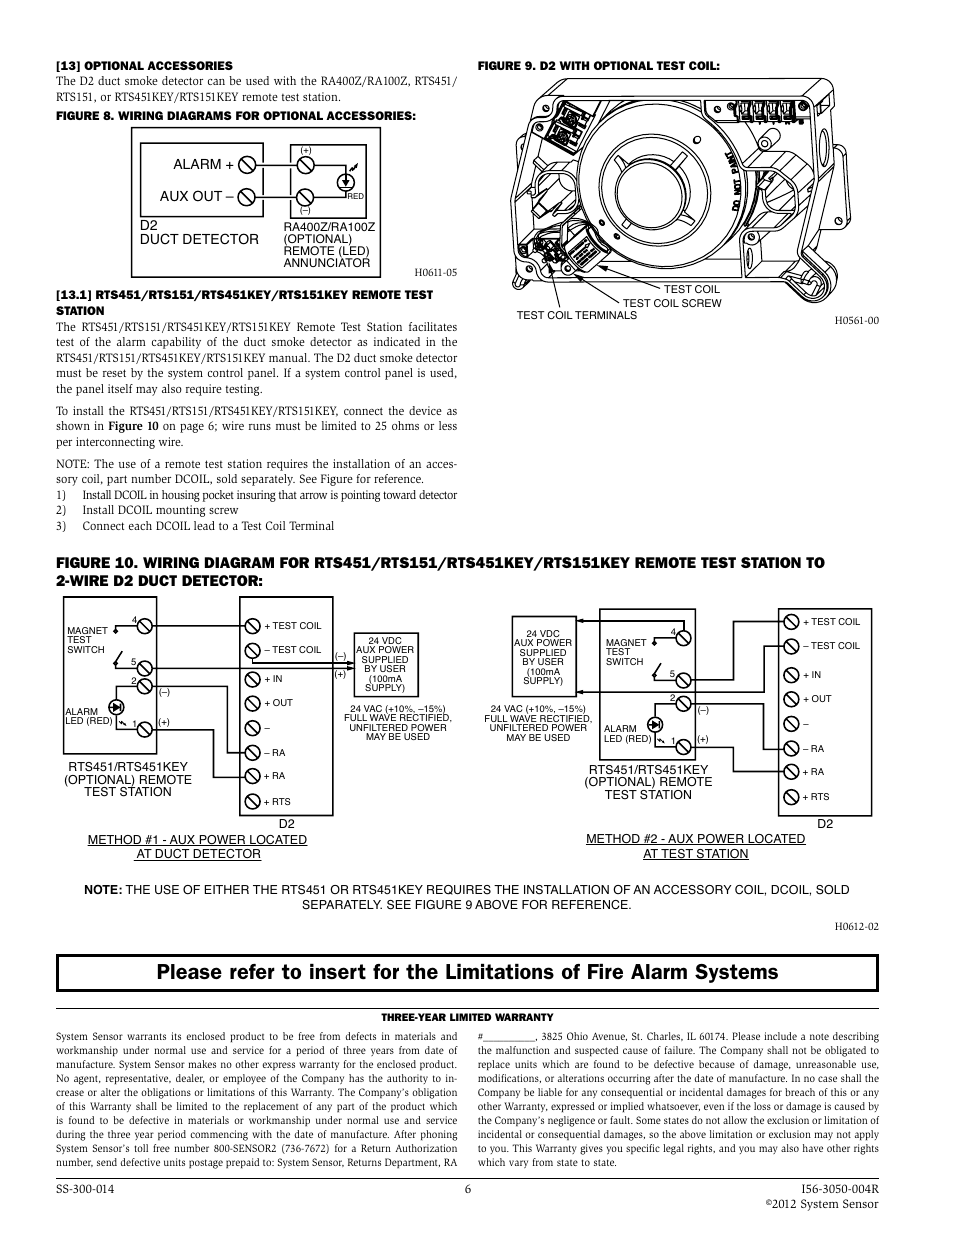 system sensor d2 page6 alarm aux out, d2 duct detector system sensor d2 user manual rts451 wiring diagram at webbmarketing.co